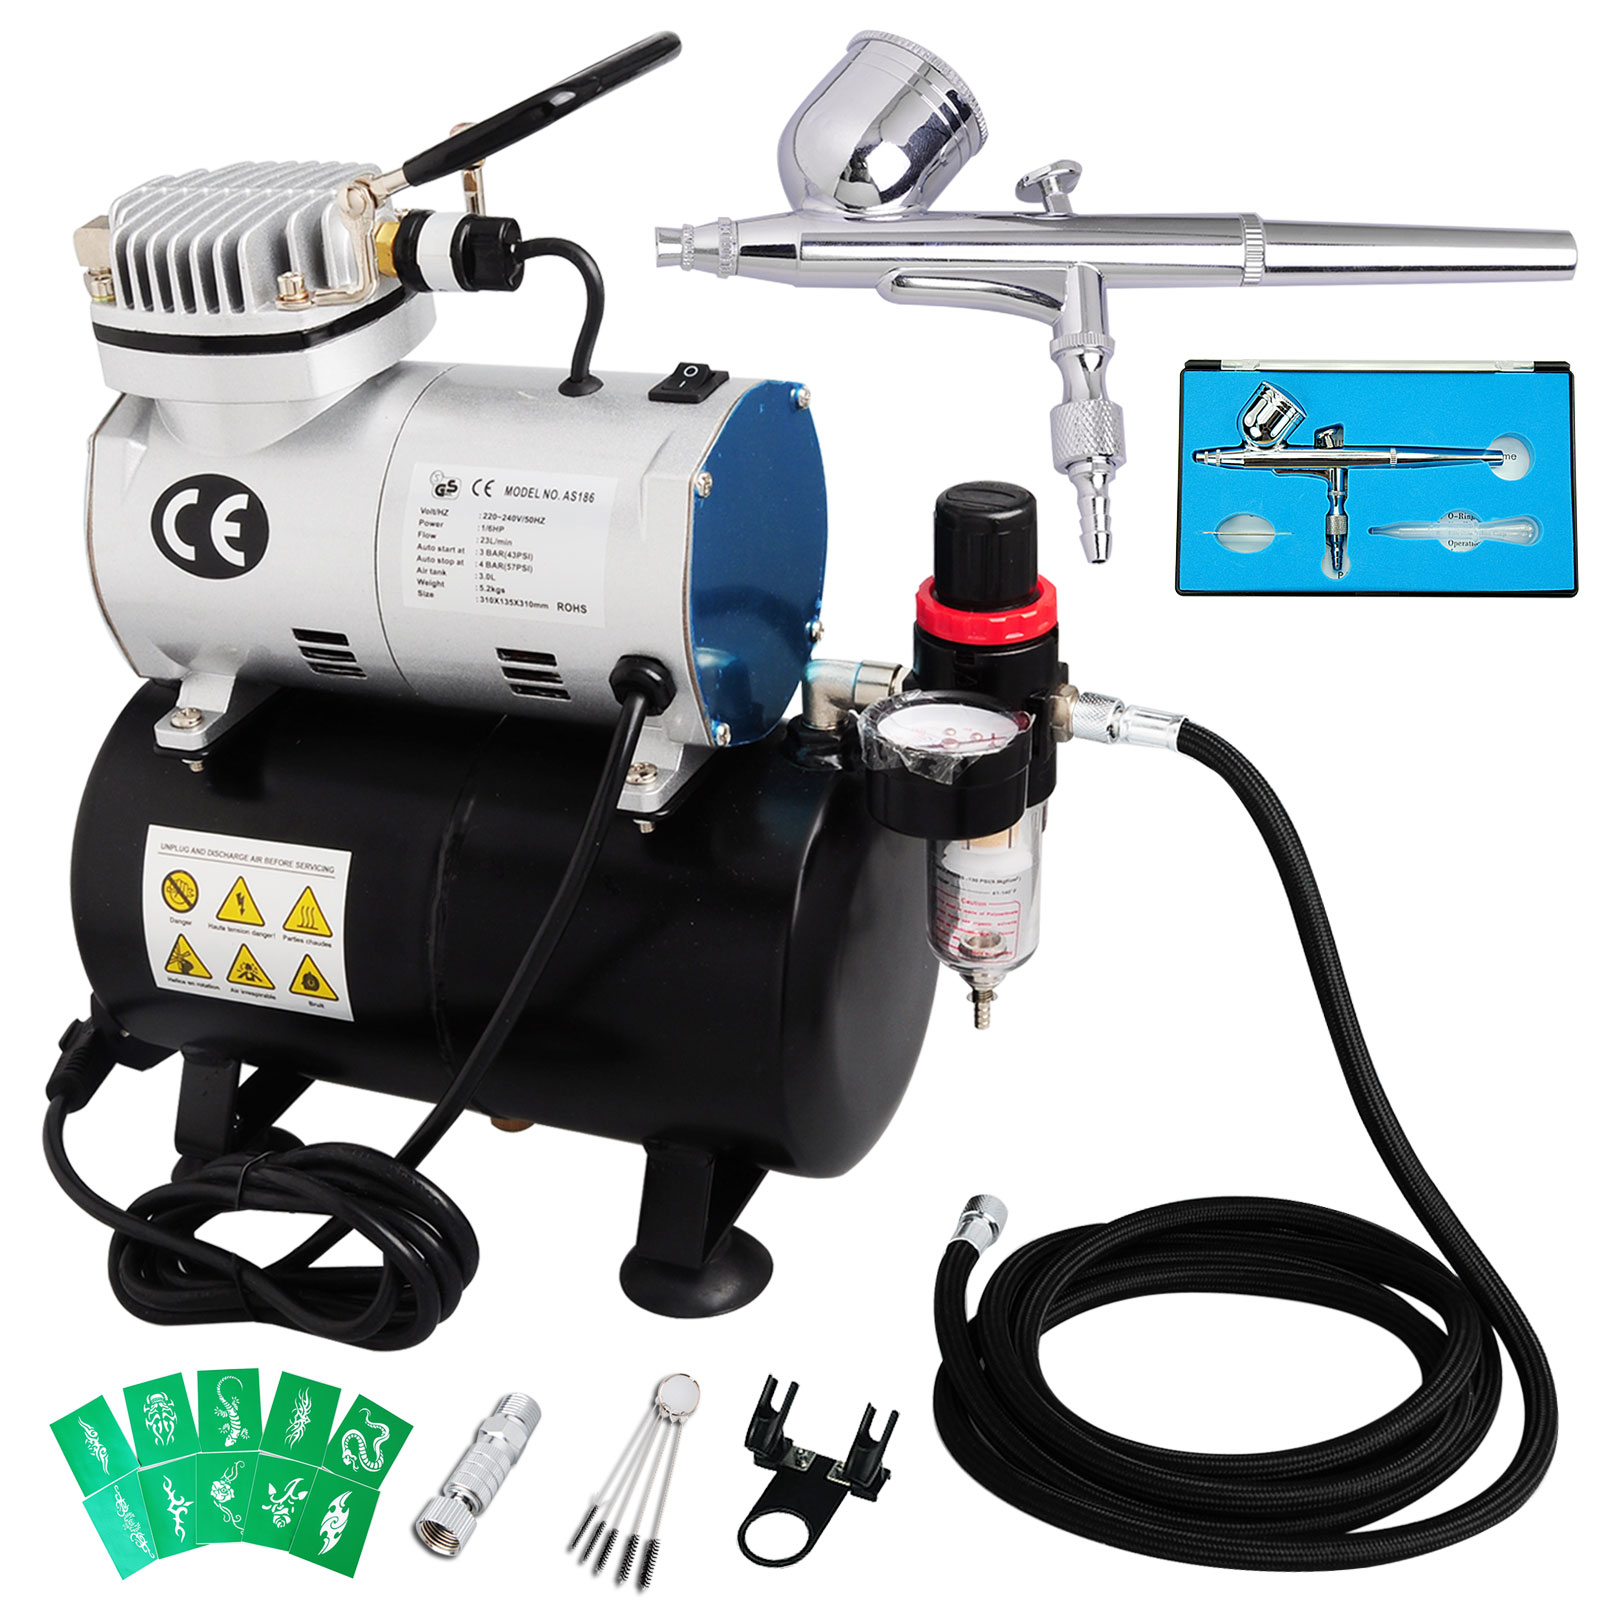 dual action airbrush 1 6hp compressor kit air brush gun. Black Bedroom Furniture Sets. Home Design Ideas